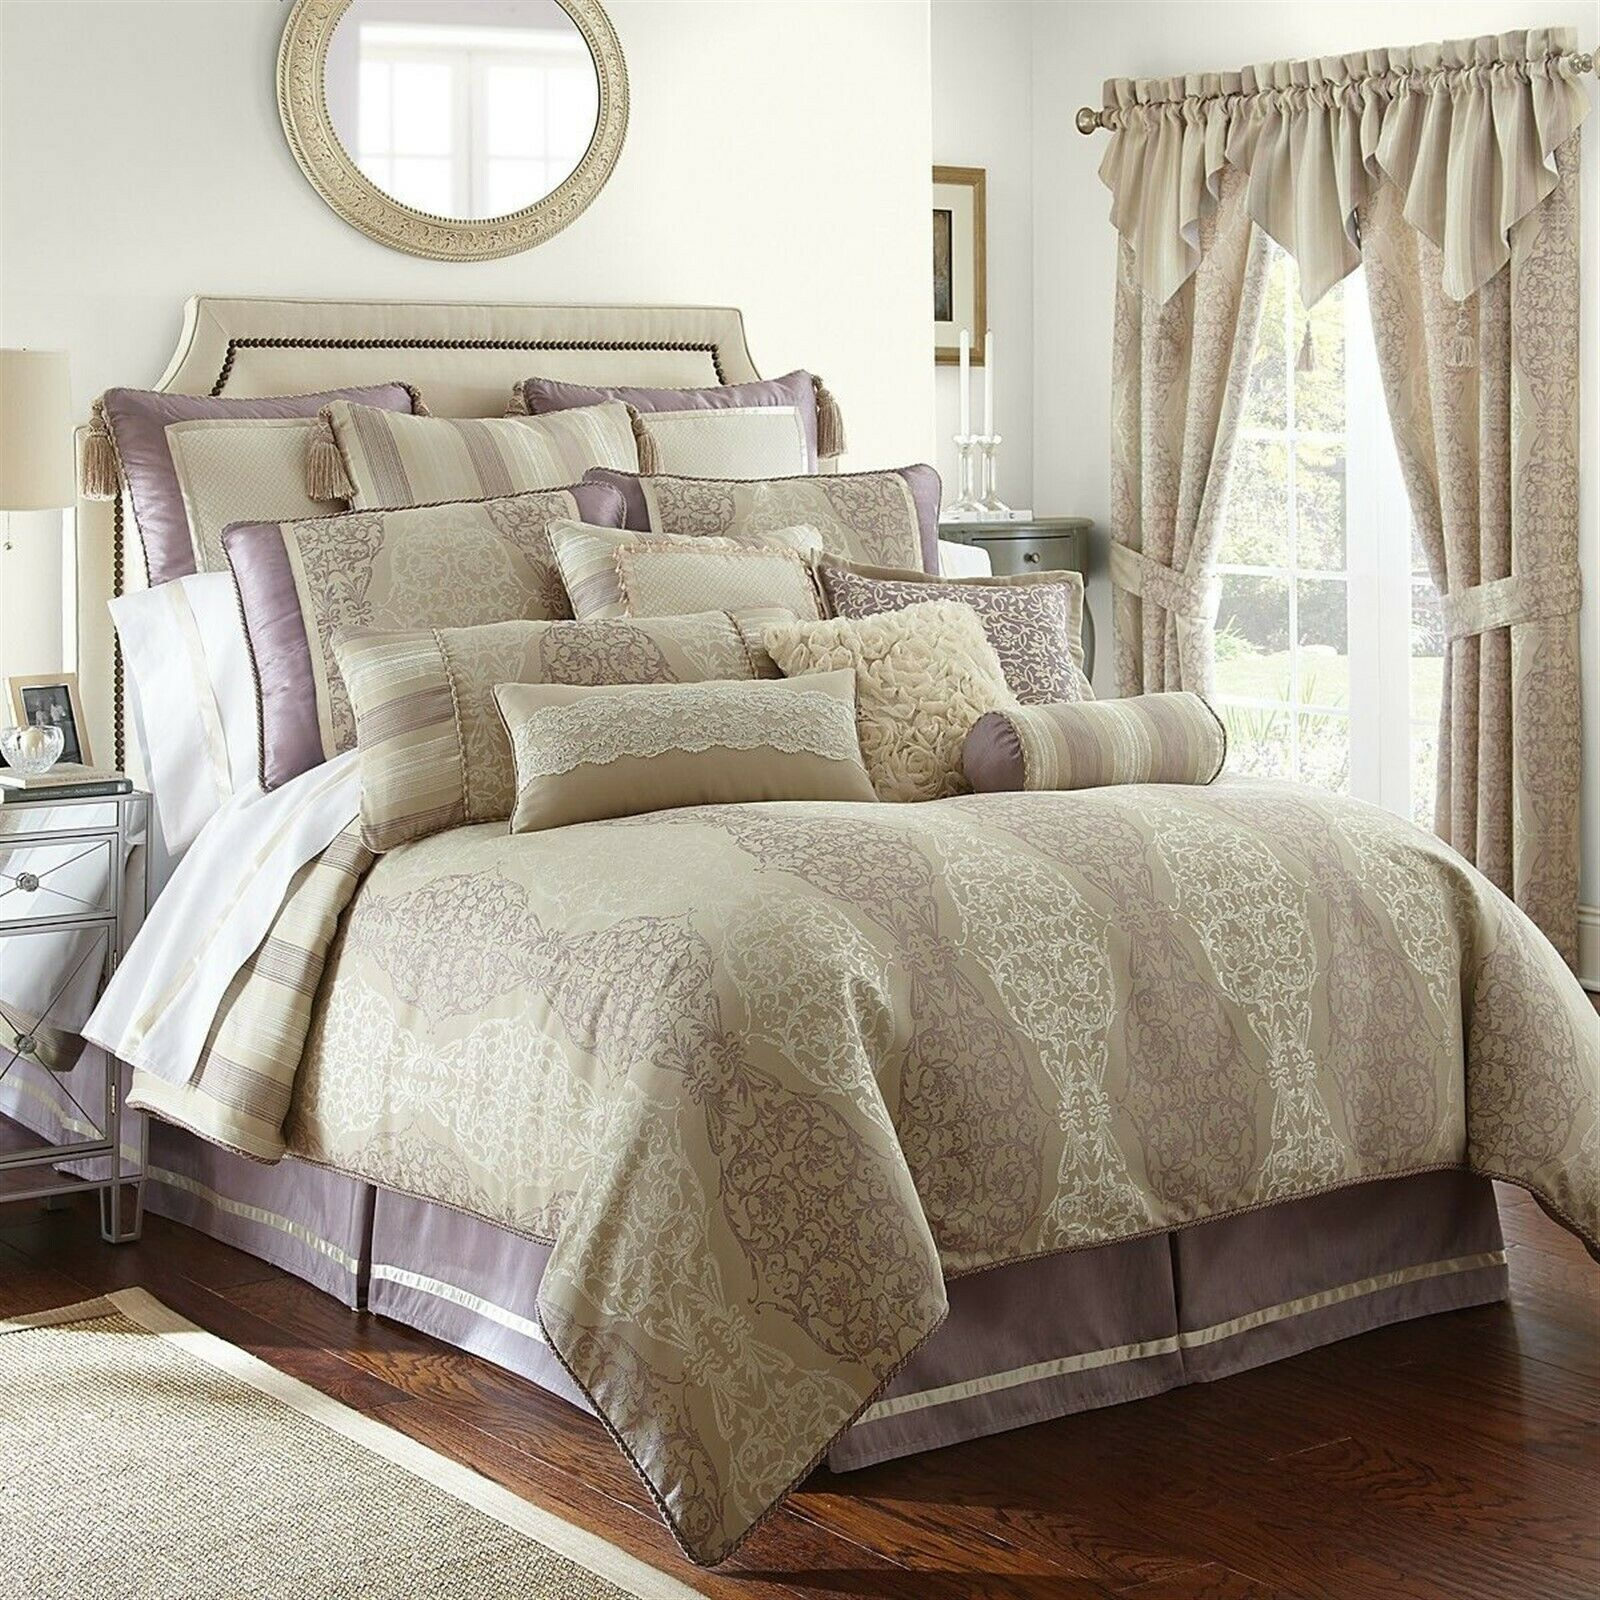 Waterford SIENNA 4P Queen Duvet Cover Shams Set Lilac Champagne - $252.15